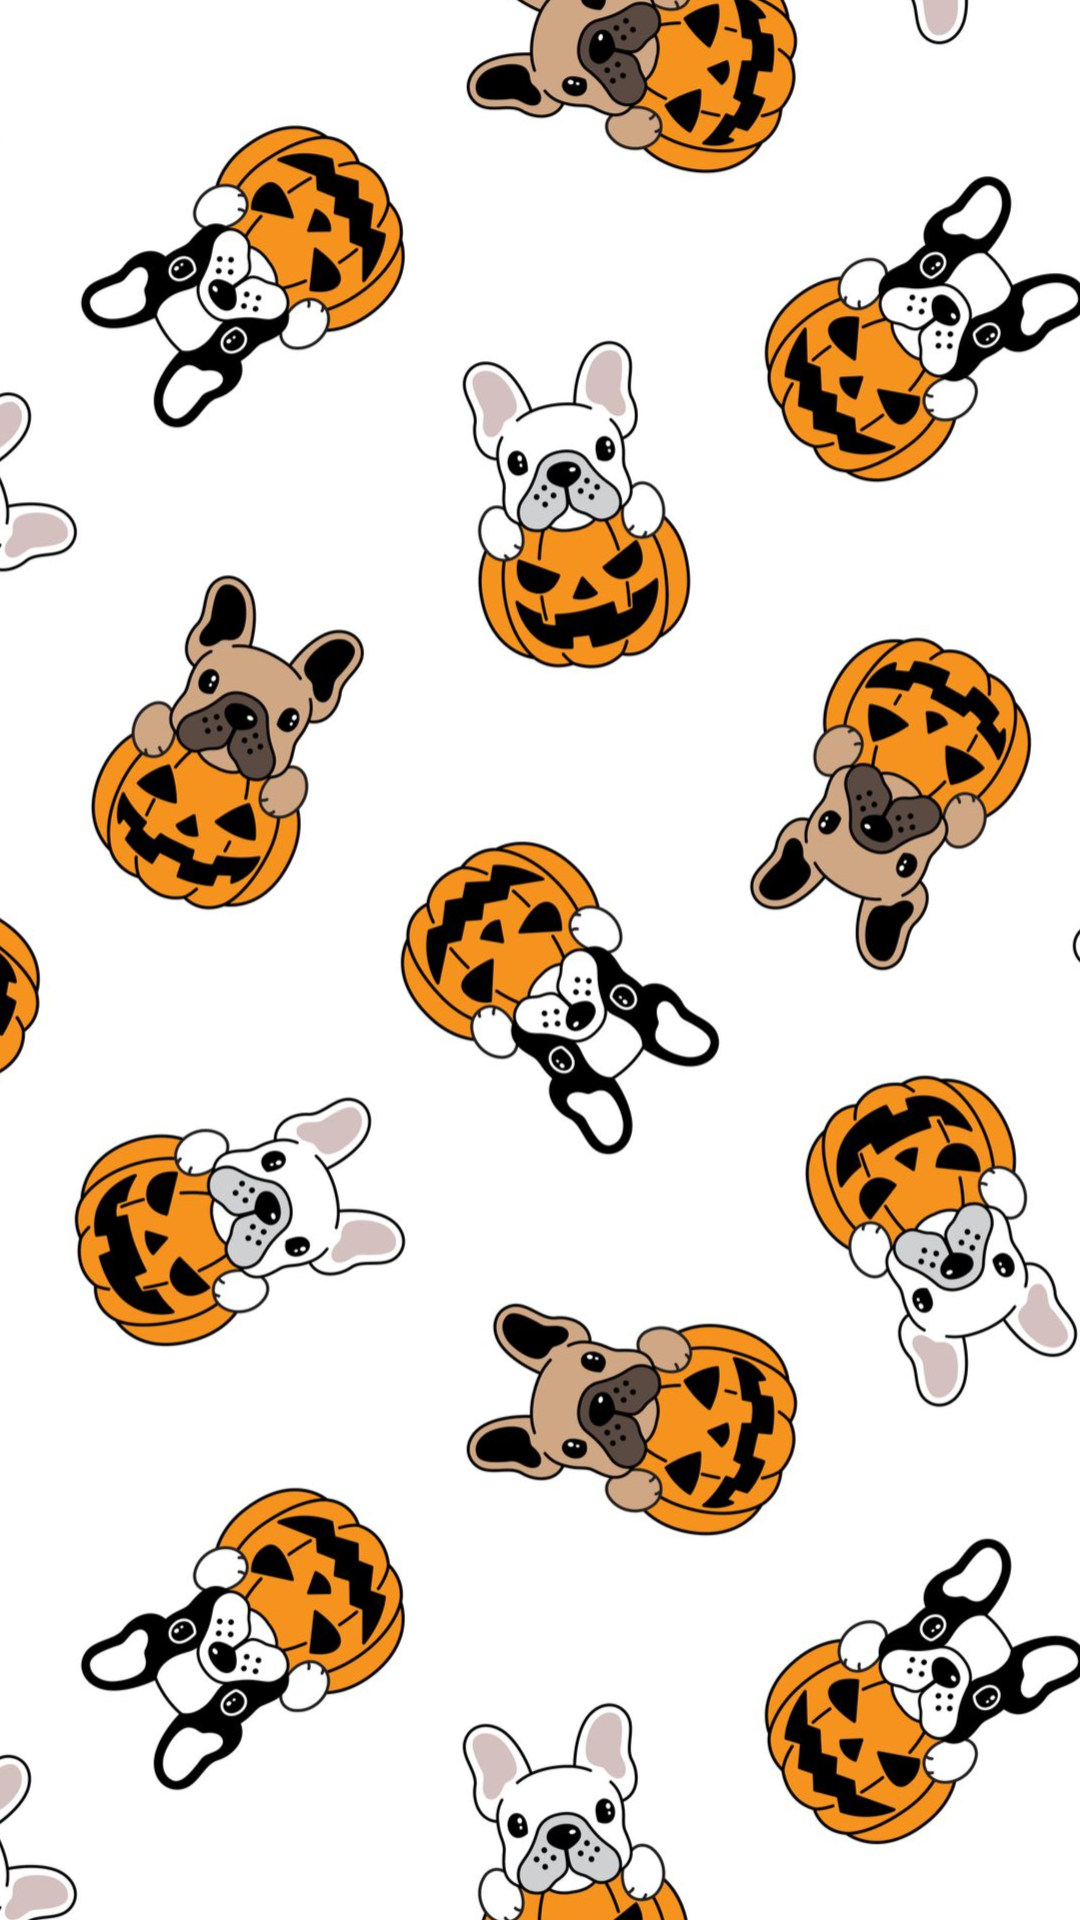 dog seamless pattern vector french bulldog pumpkin Halloween cartoon scarf cartoon isolated repeat wallpaper tile background illustration - Vector